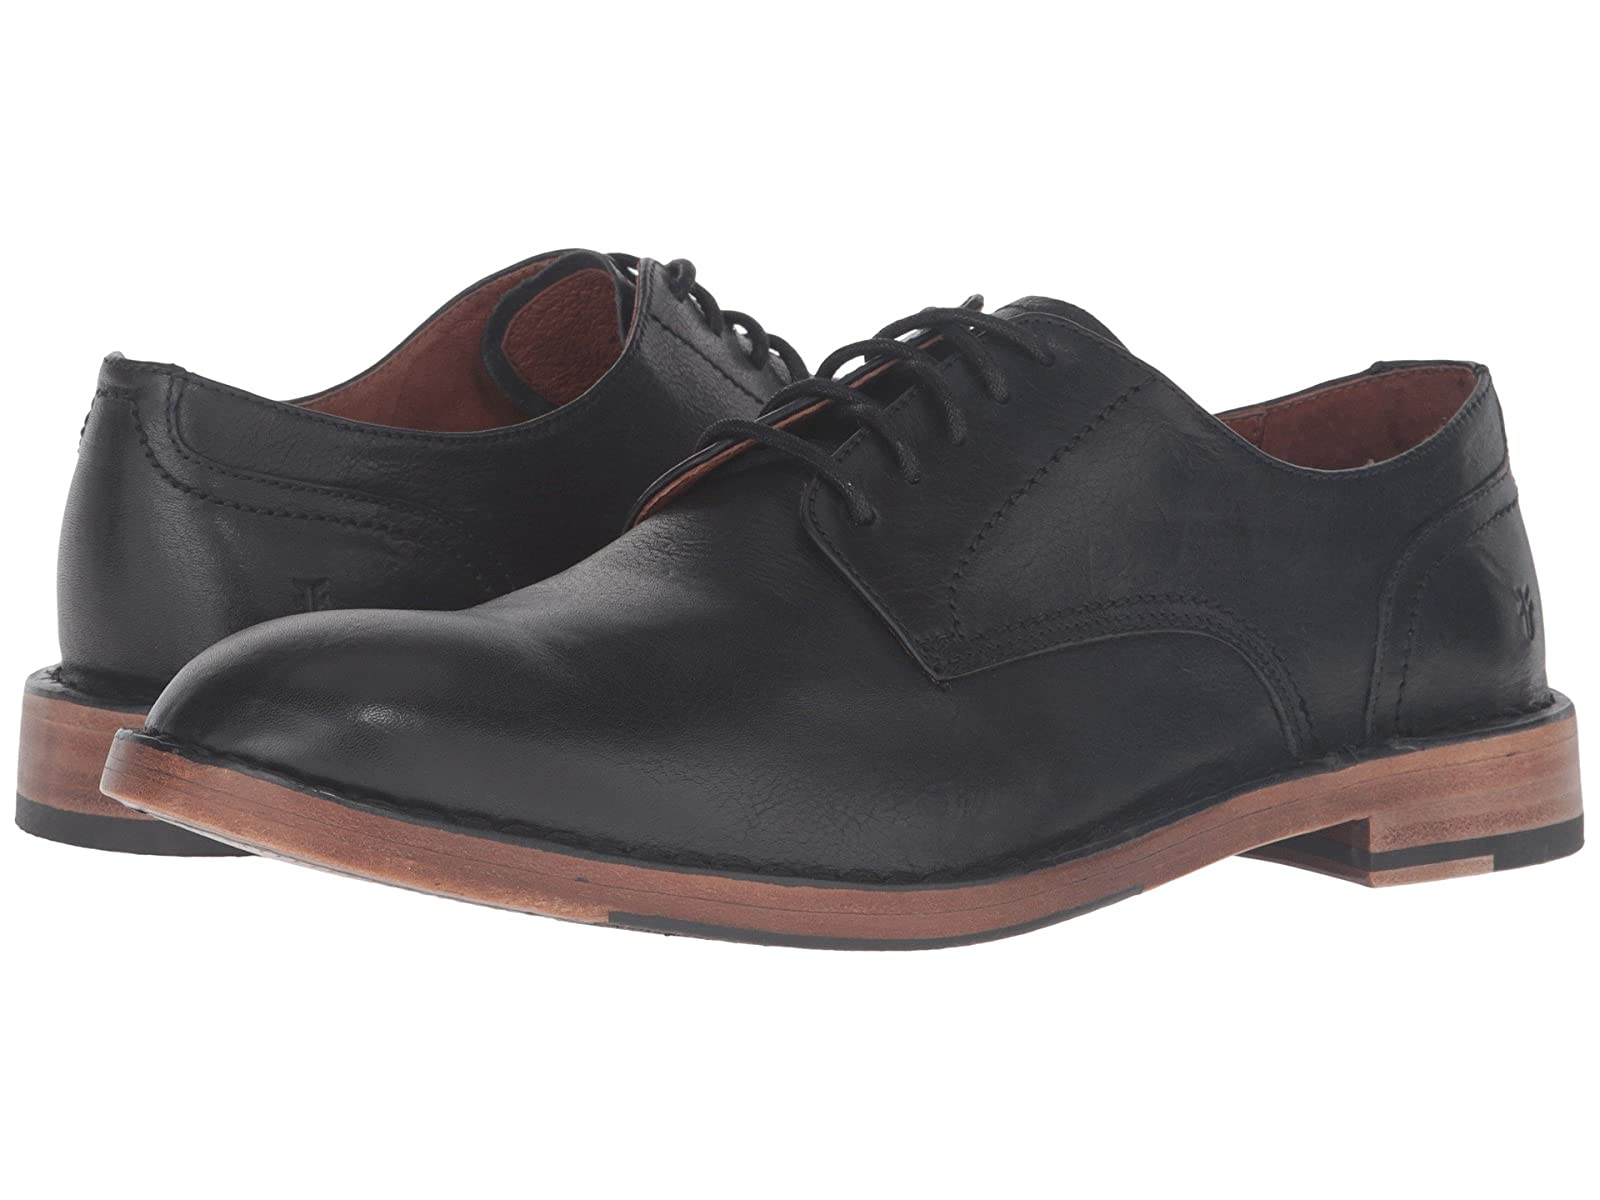 Frye Mark OxfordCheap and distinctive eye-catching shoes